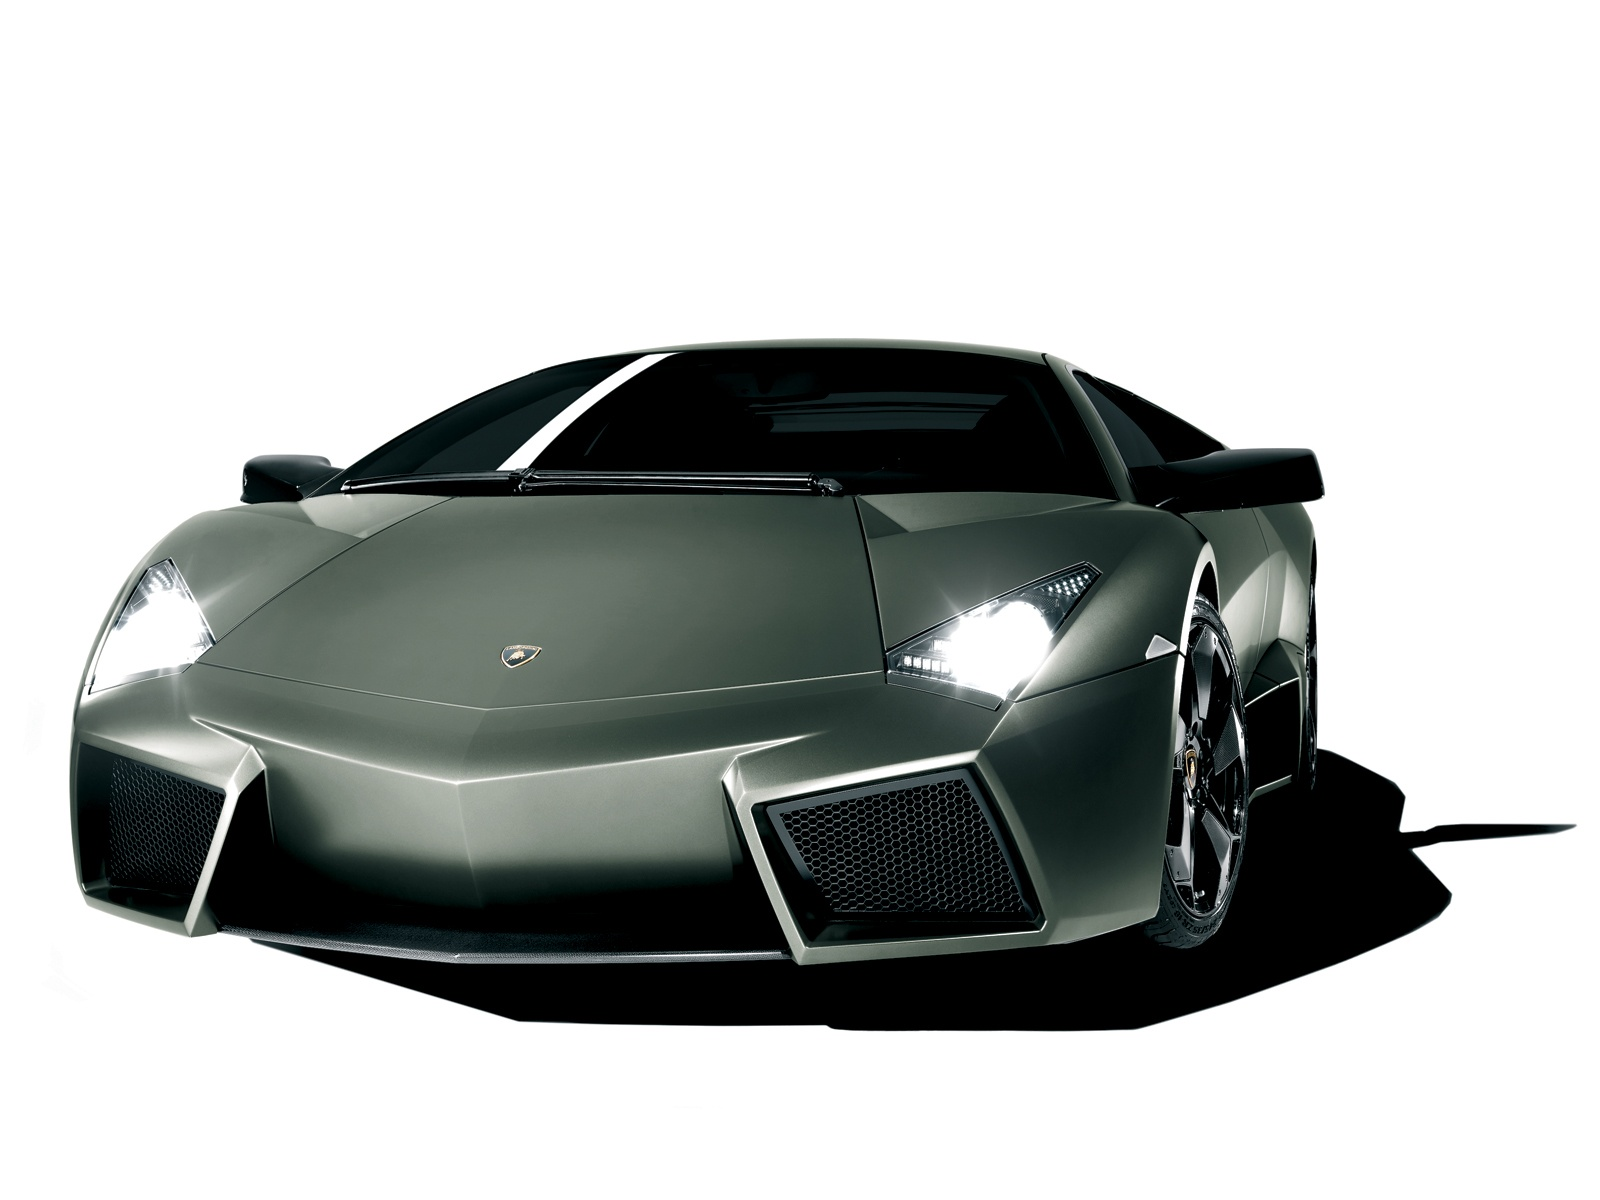 Super Cars 1 Million Dollar Lamborghini Reventon